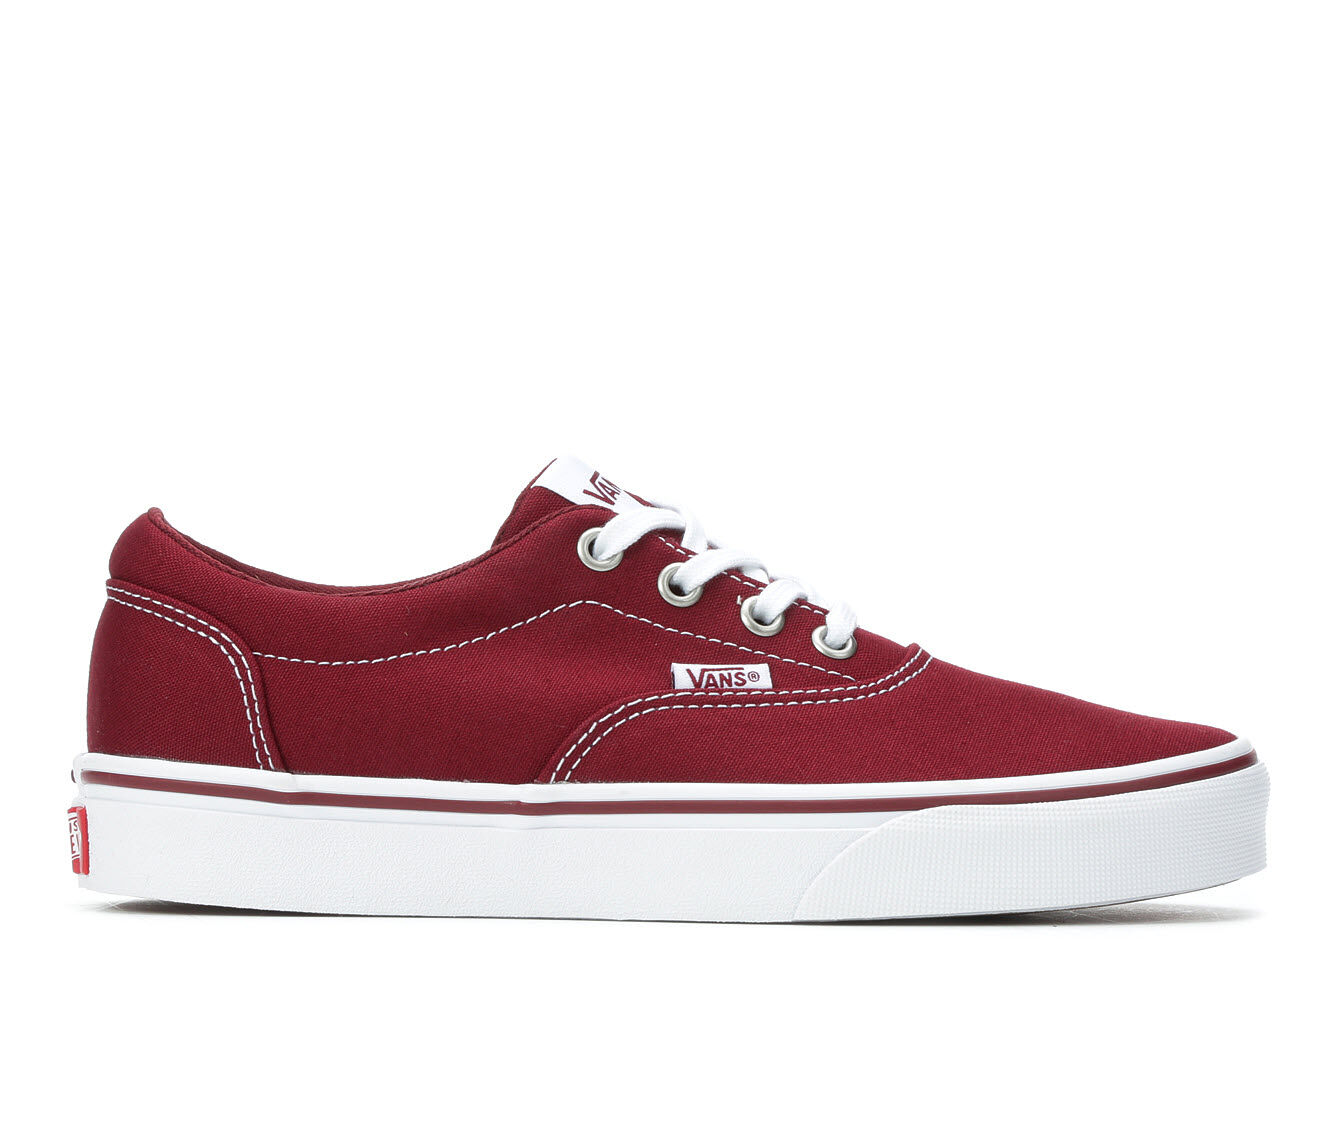 Women's Vans Doheny Skate Shoes Cabernet Red